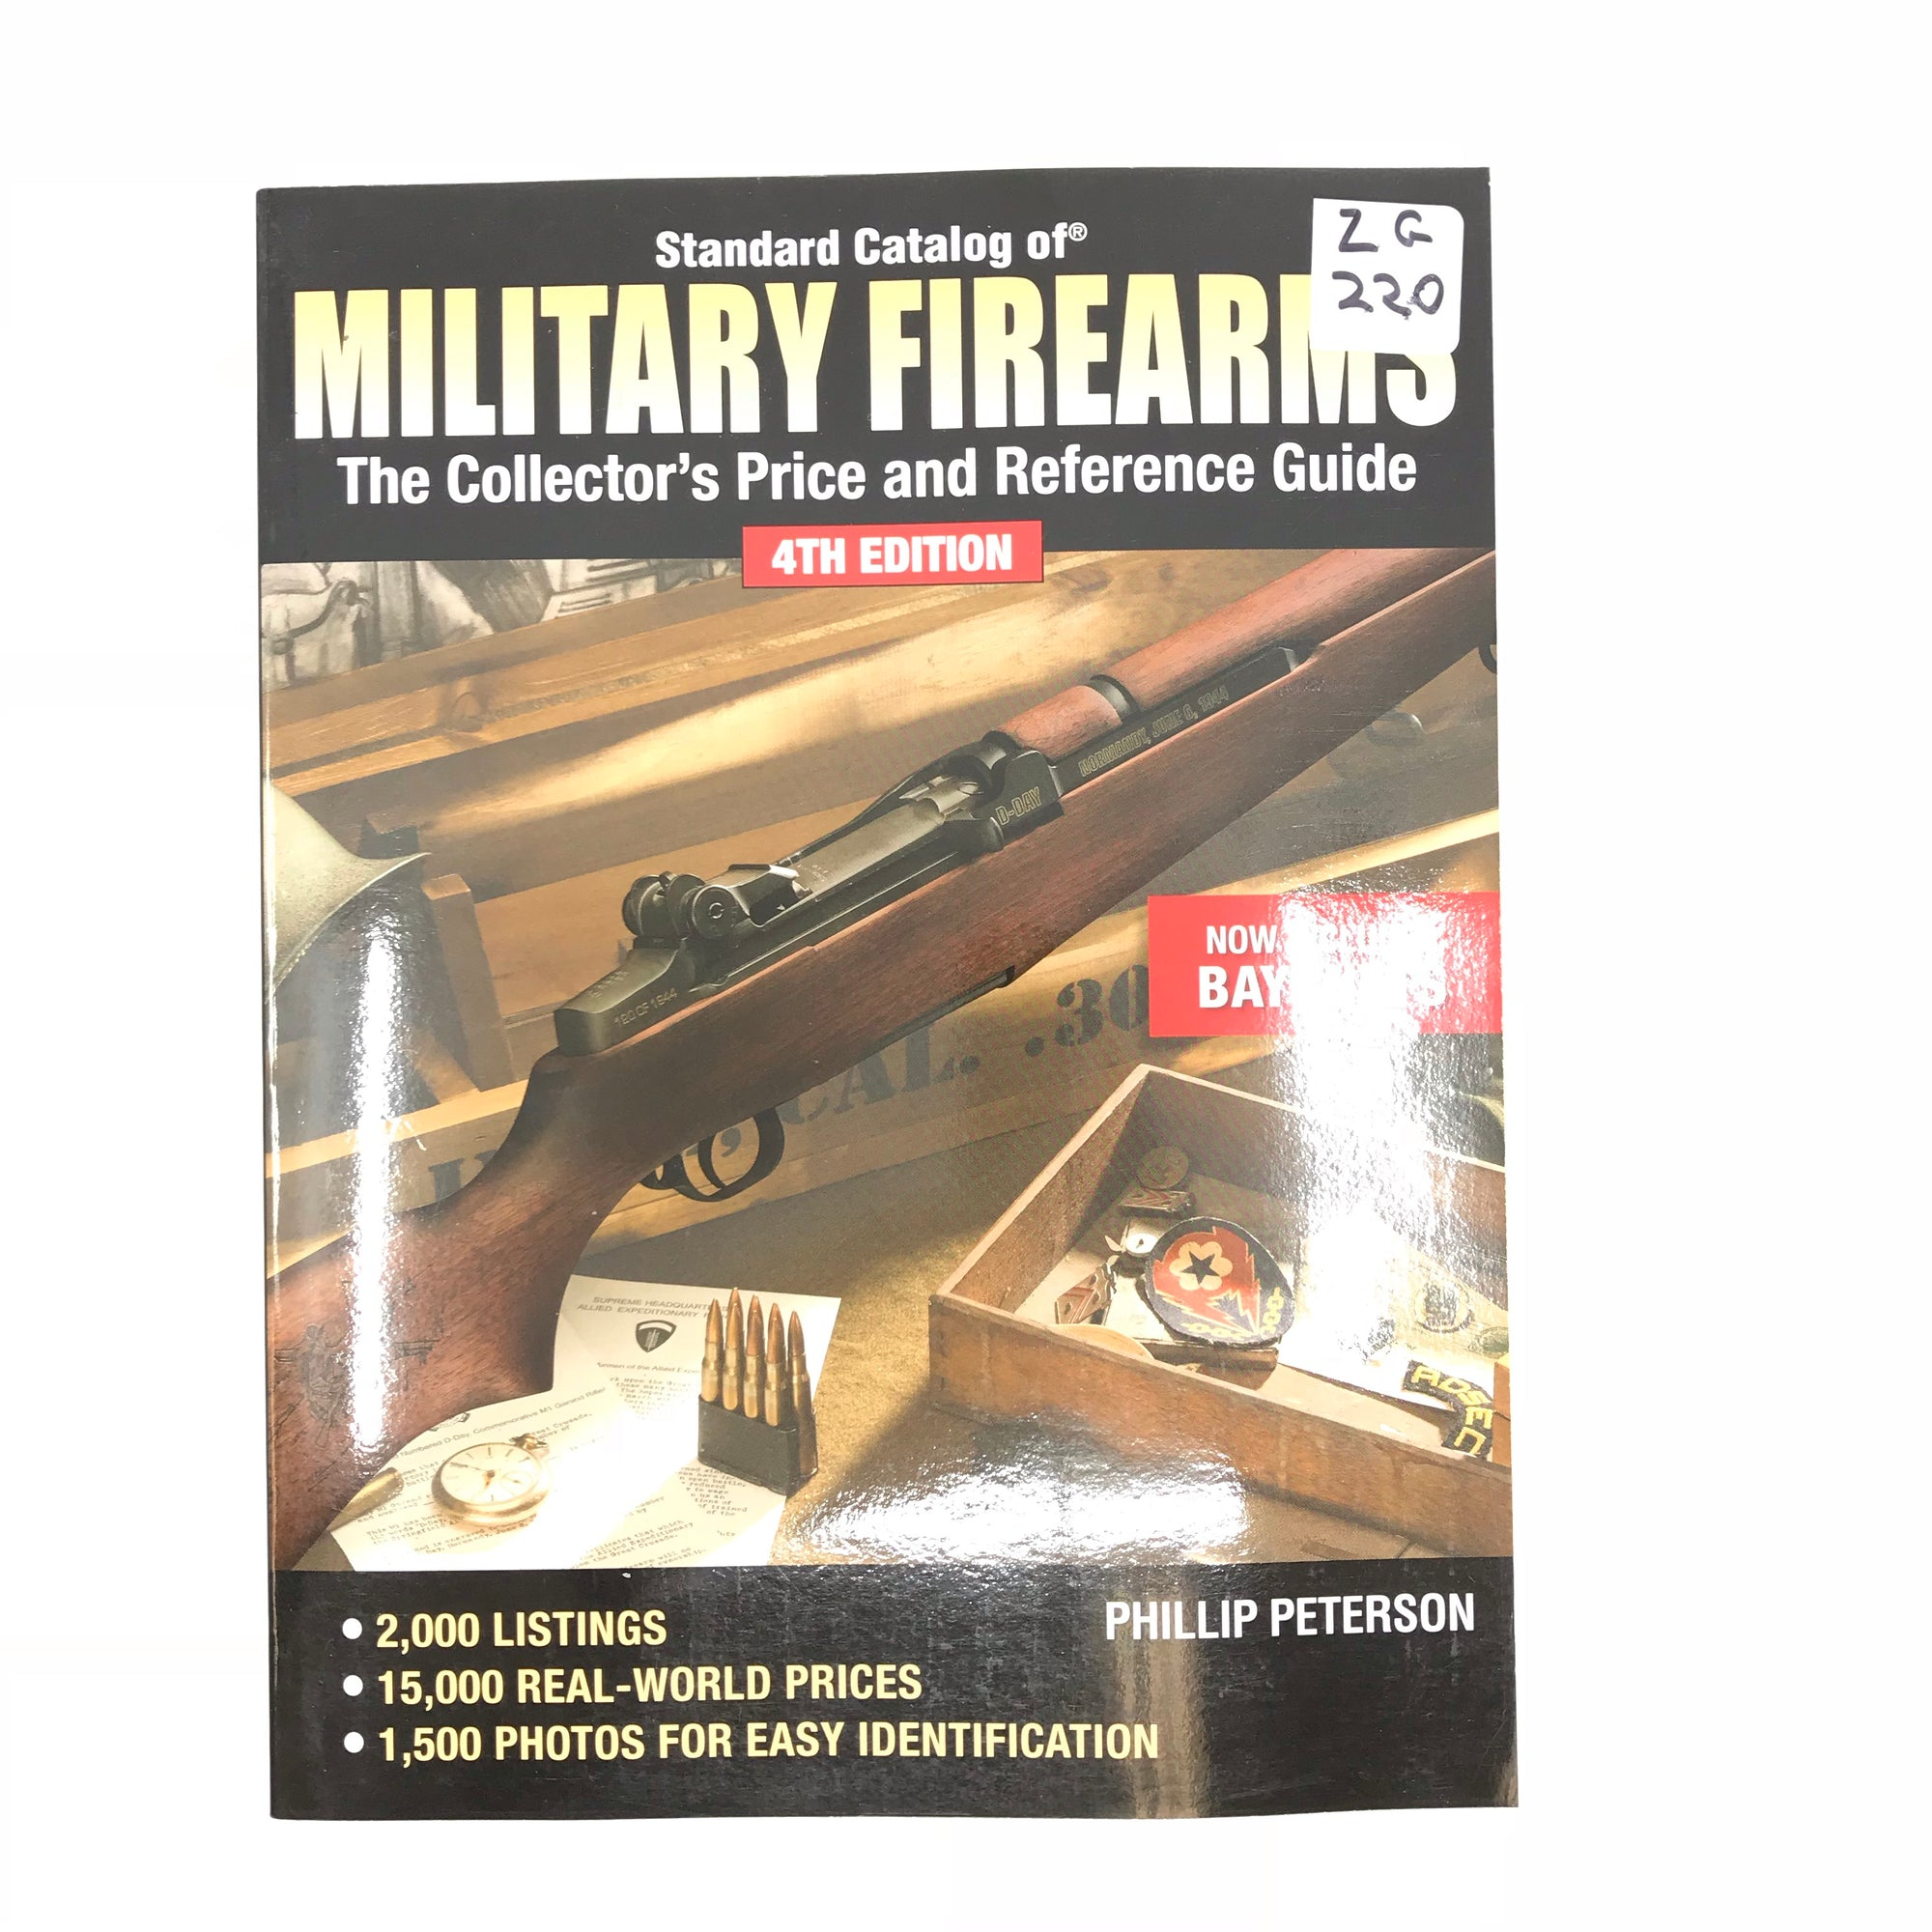 Standard Catalog of Military Firearms 4th ed